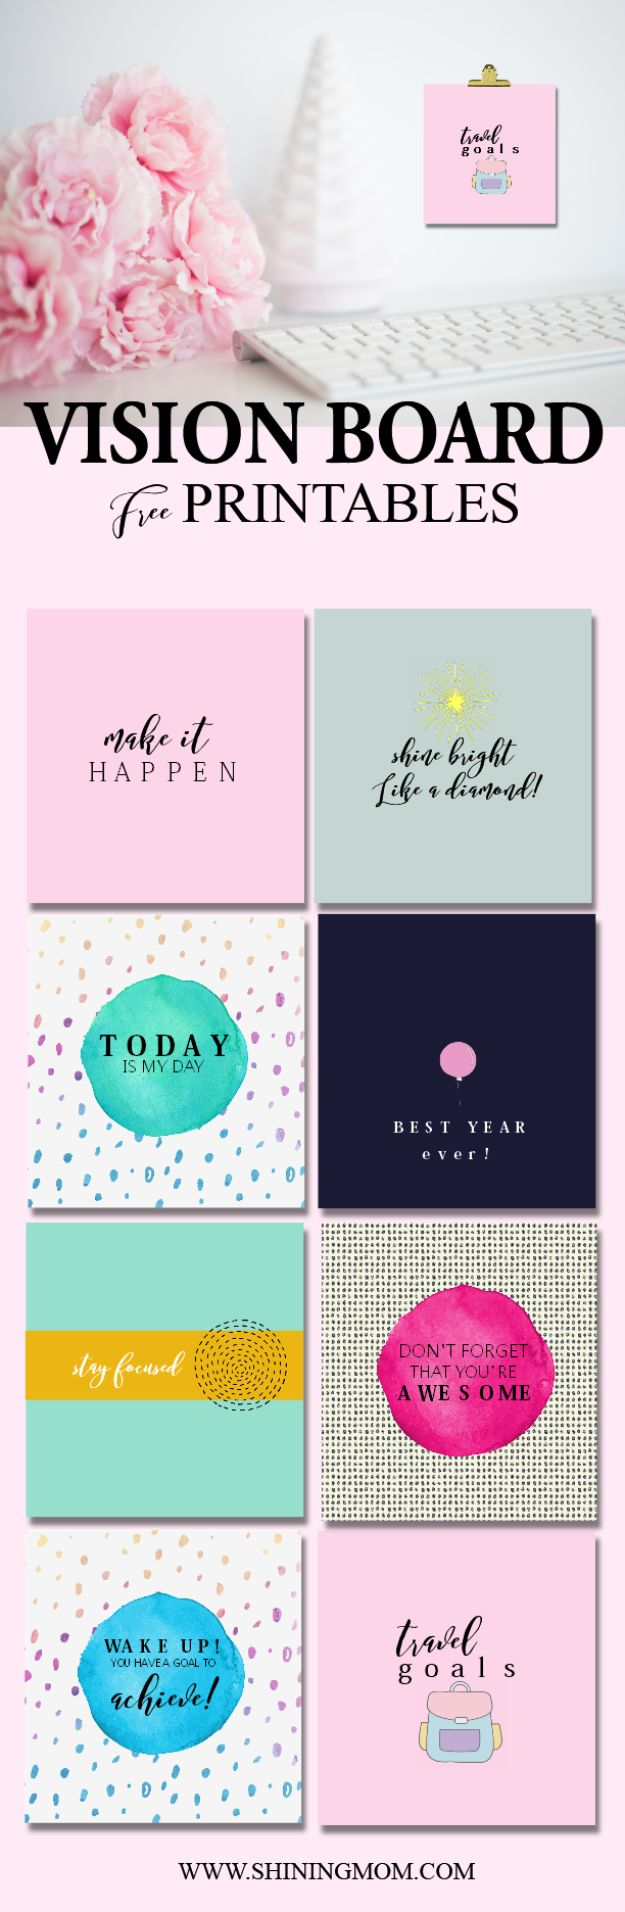 Free Printables For Your Walls - Vision Board Free Printable - Easy Canvas Ideas With Free Downloadable Artwork and Quote Sayings - Best Free Prints for Wall Art and Picture to Print for Home and Bedroom Decor - Signs for the Home, Organization, Office - Quotes for Bedroom and Kitchens, Vintage Bathroom Pictures - Downloadable Printable for Kids - DIY and Crafts by DIY JOY #wallart #freeprintables #diyideas #diyart #walldecor #diyhomedecor http://diyjoy.com/best-free-printables-wall-art